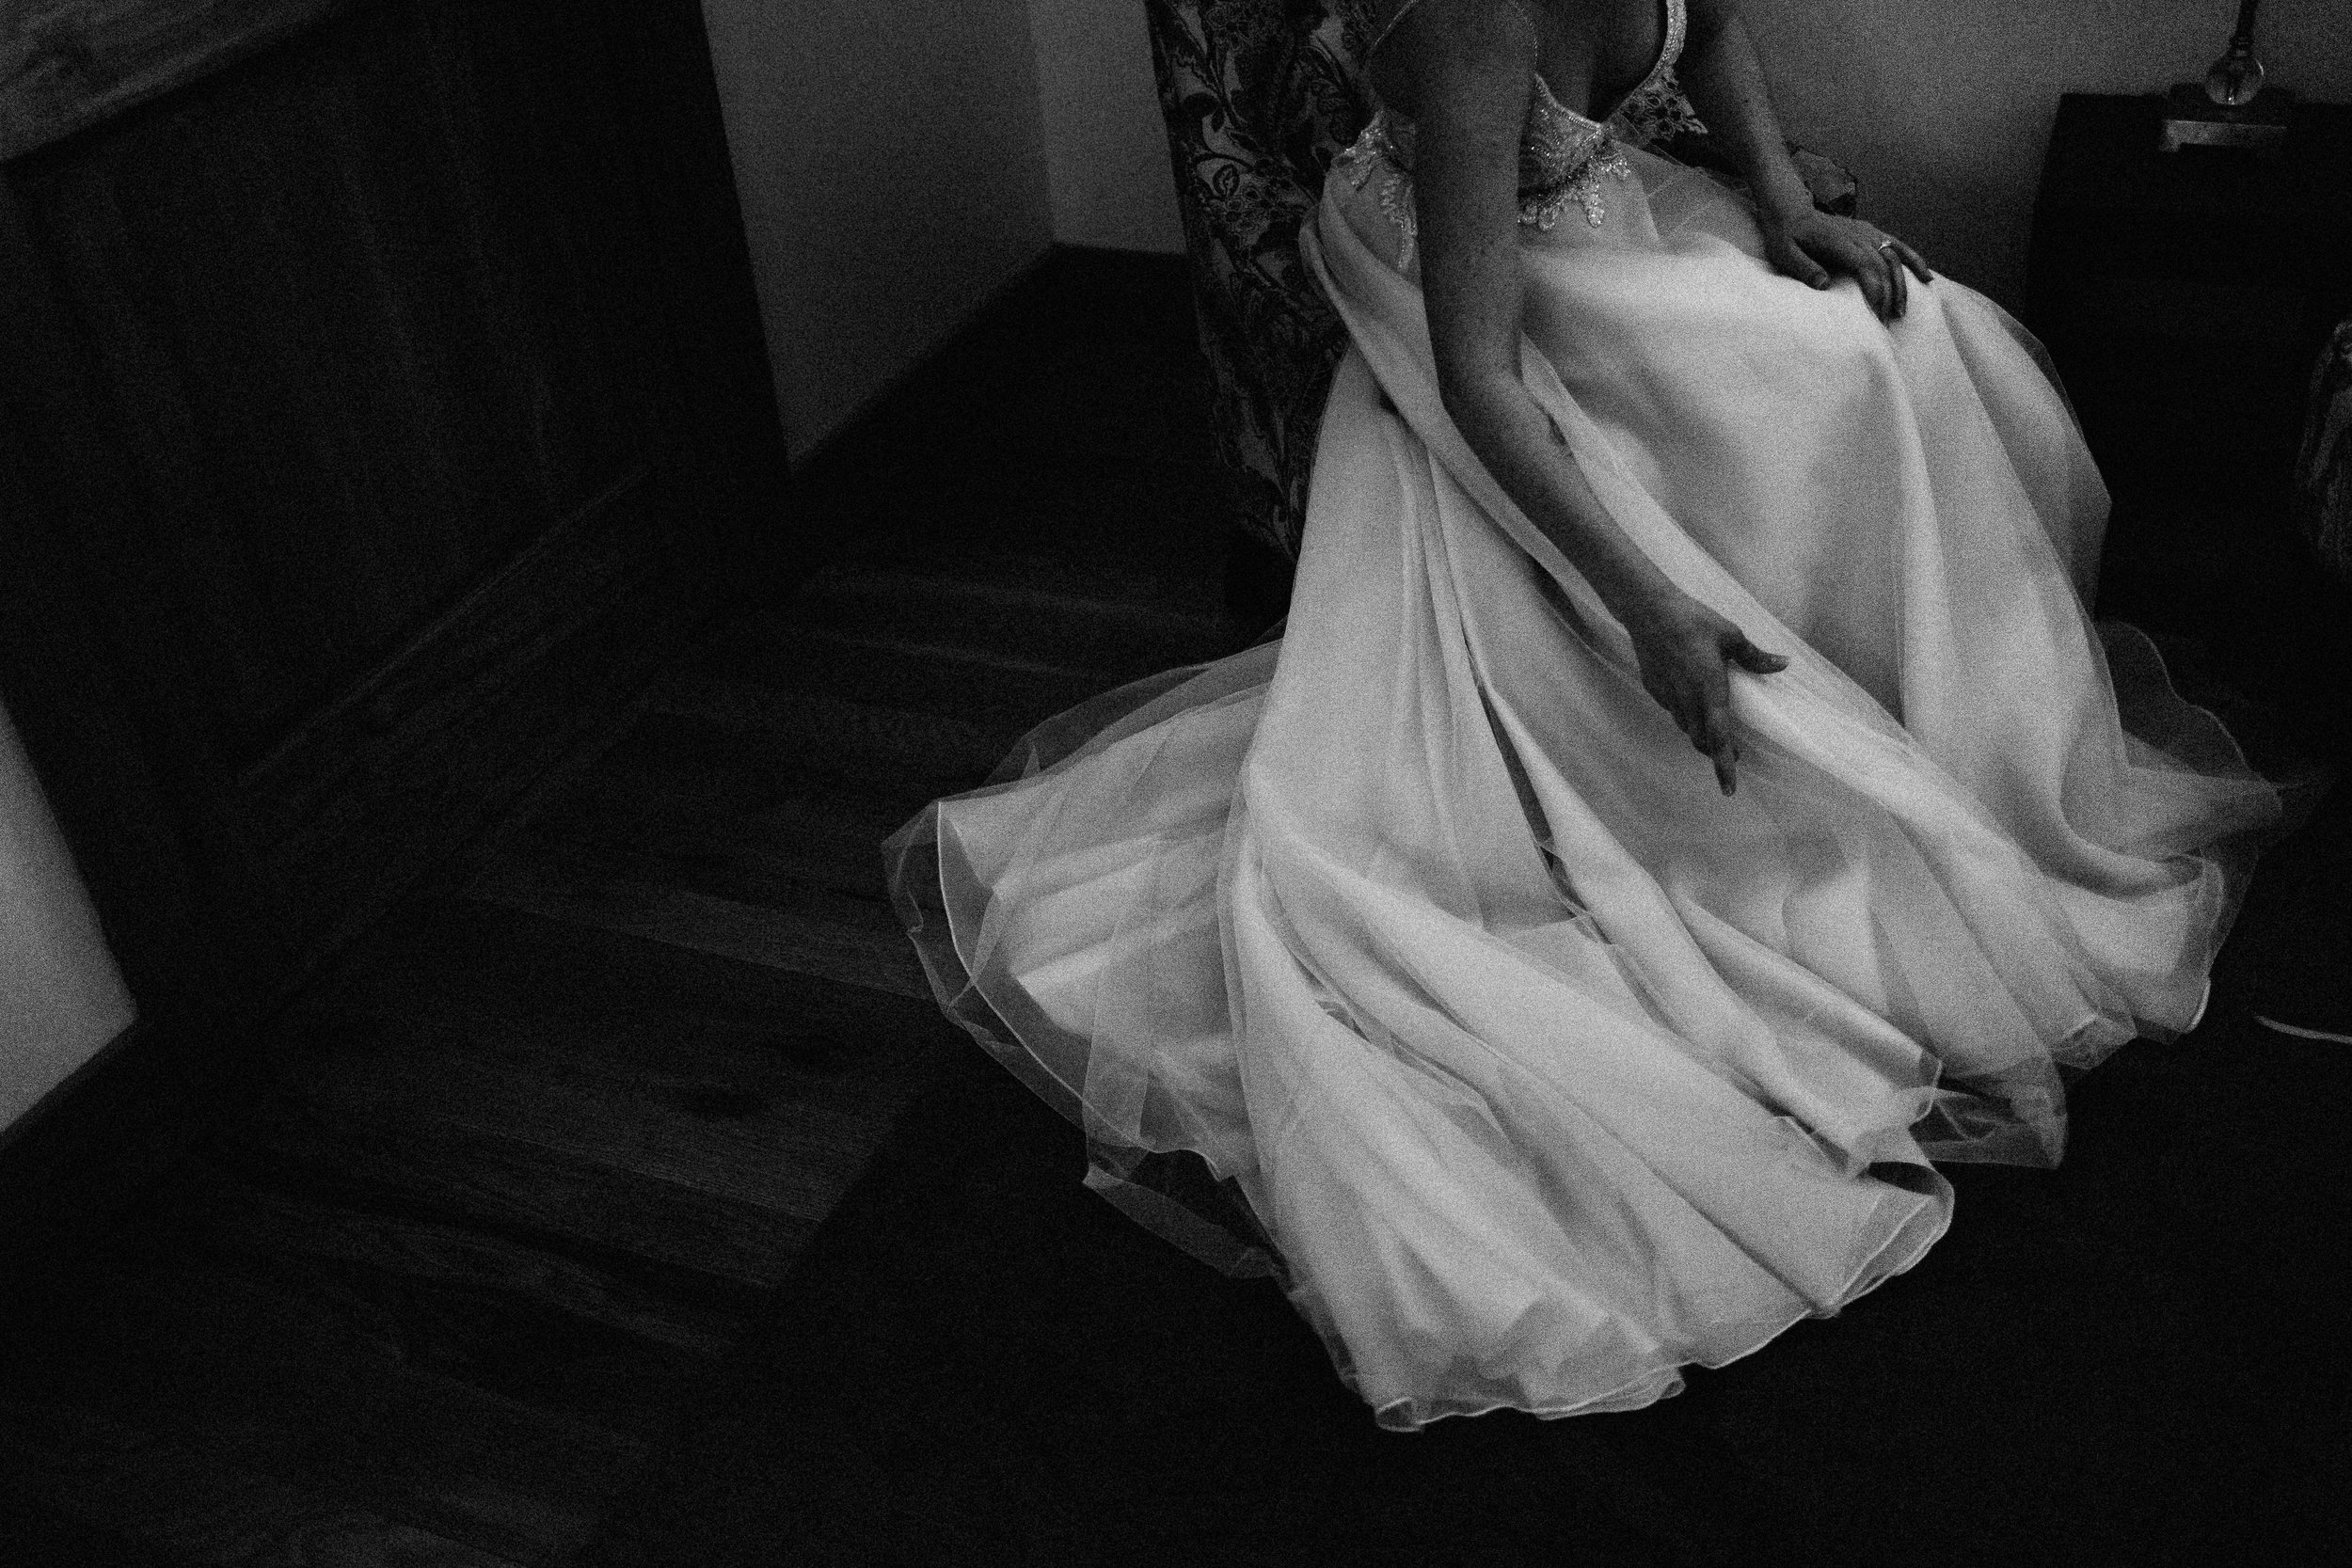 dahlonega_juliette_chapel_photojournalism_atlanta_wedding_photographers_1183.jpg